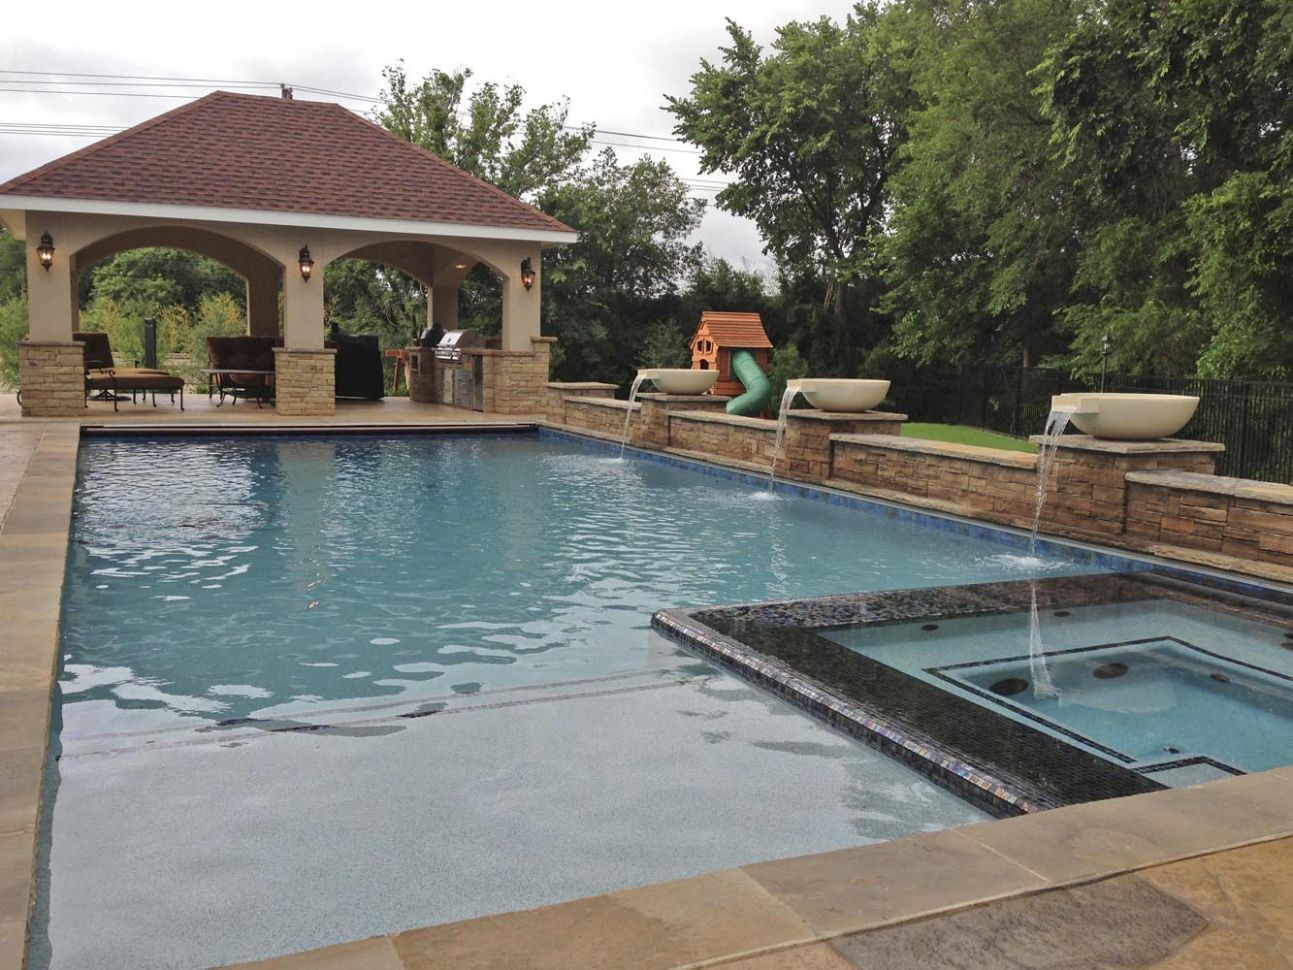 12 Impressive Inground Hot Tub and Pool Ideas For Your Home | Carnahan